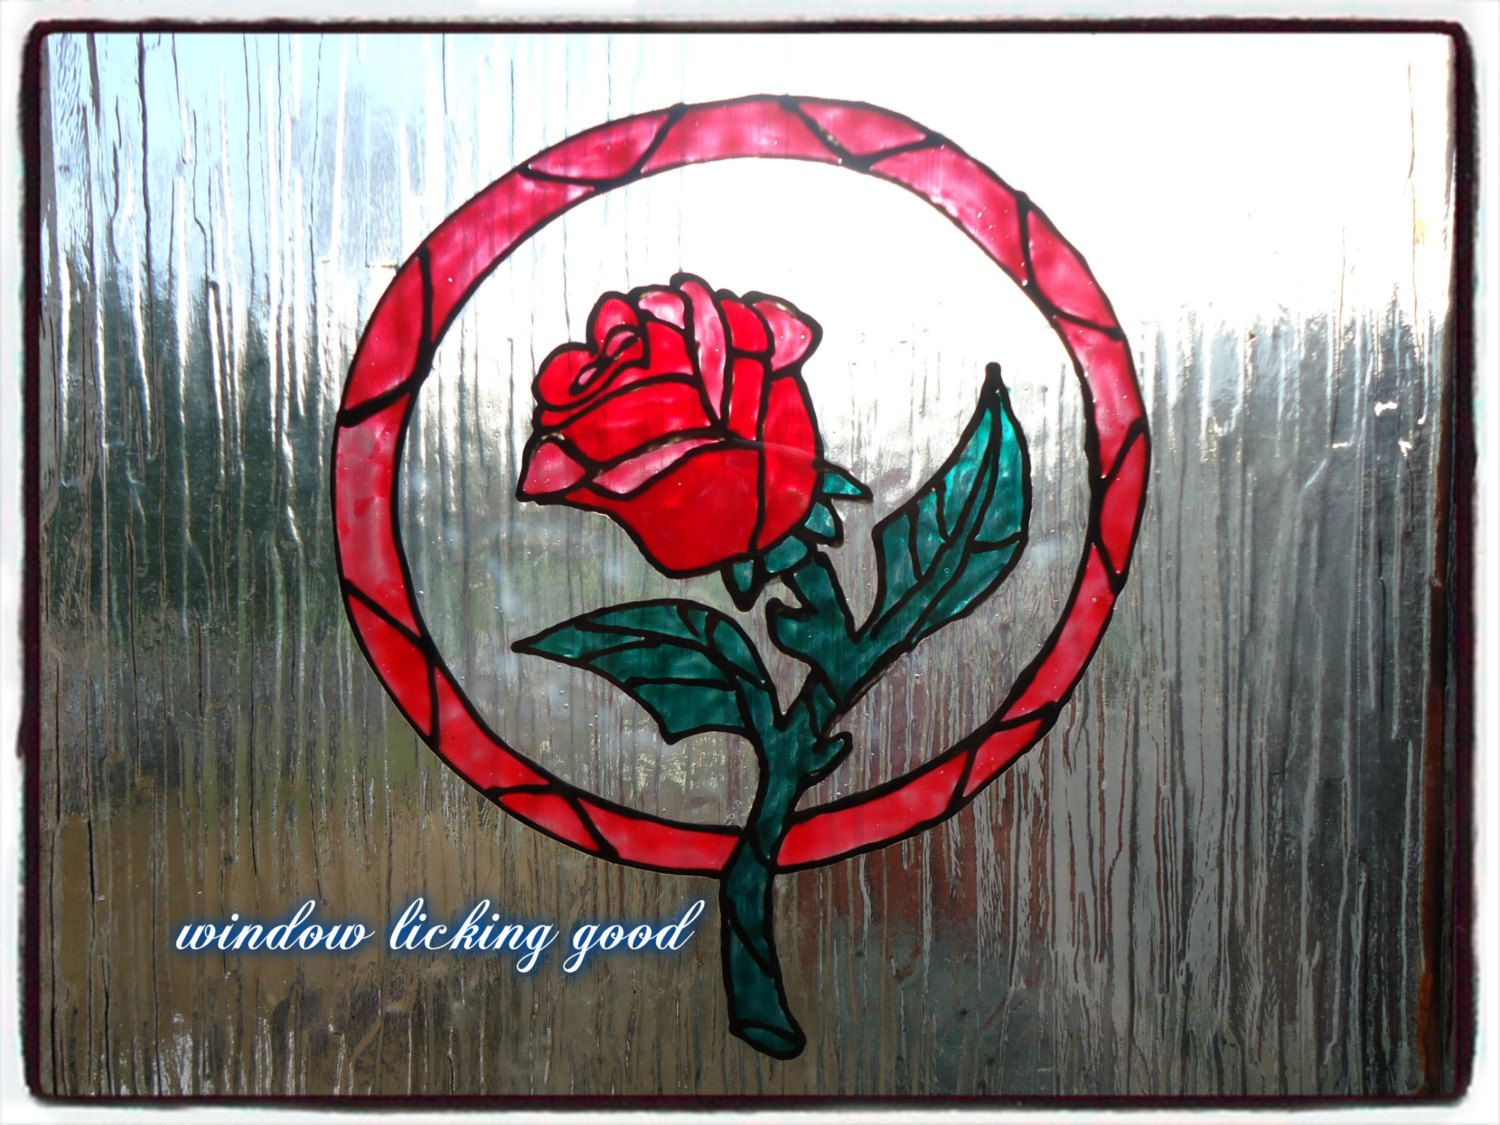 Beauty and the beast stained glass rose window cling suncatcher window sticker decal stained glass style by windowlickinggoodfb on etsy